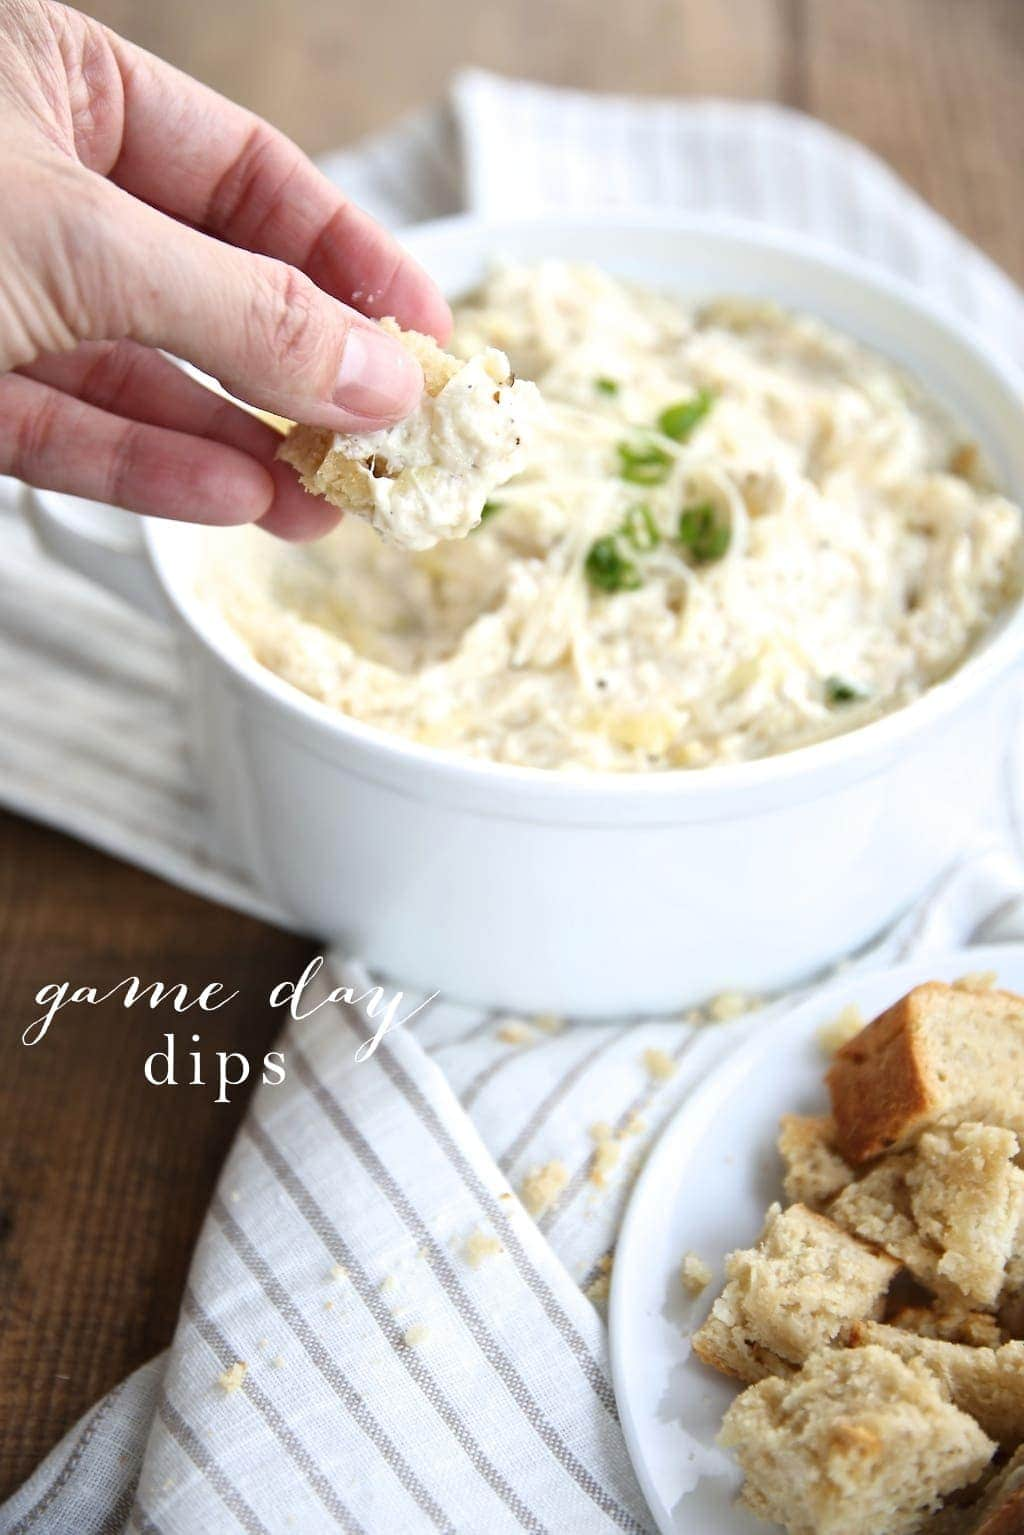 A hand dipping into a fresh easy dip recipe in a white bowl.